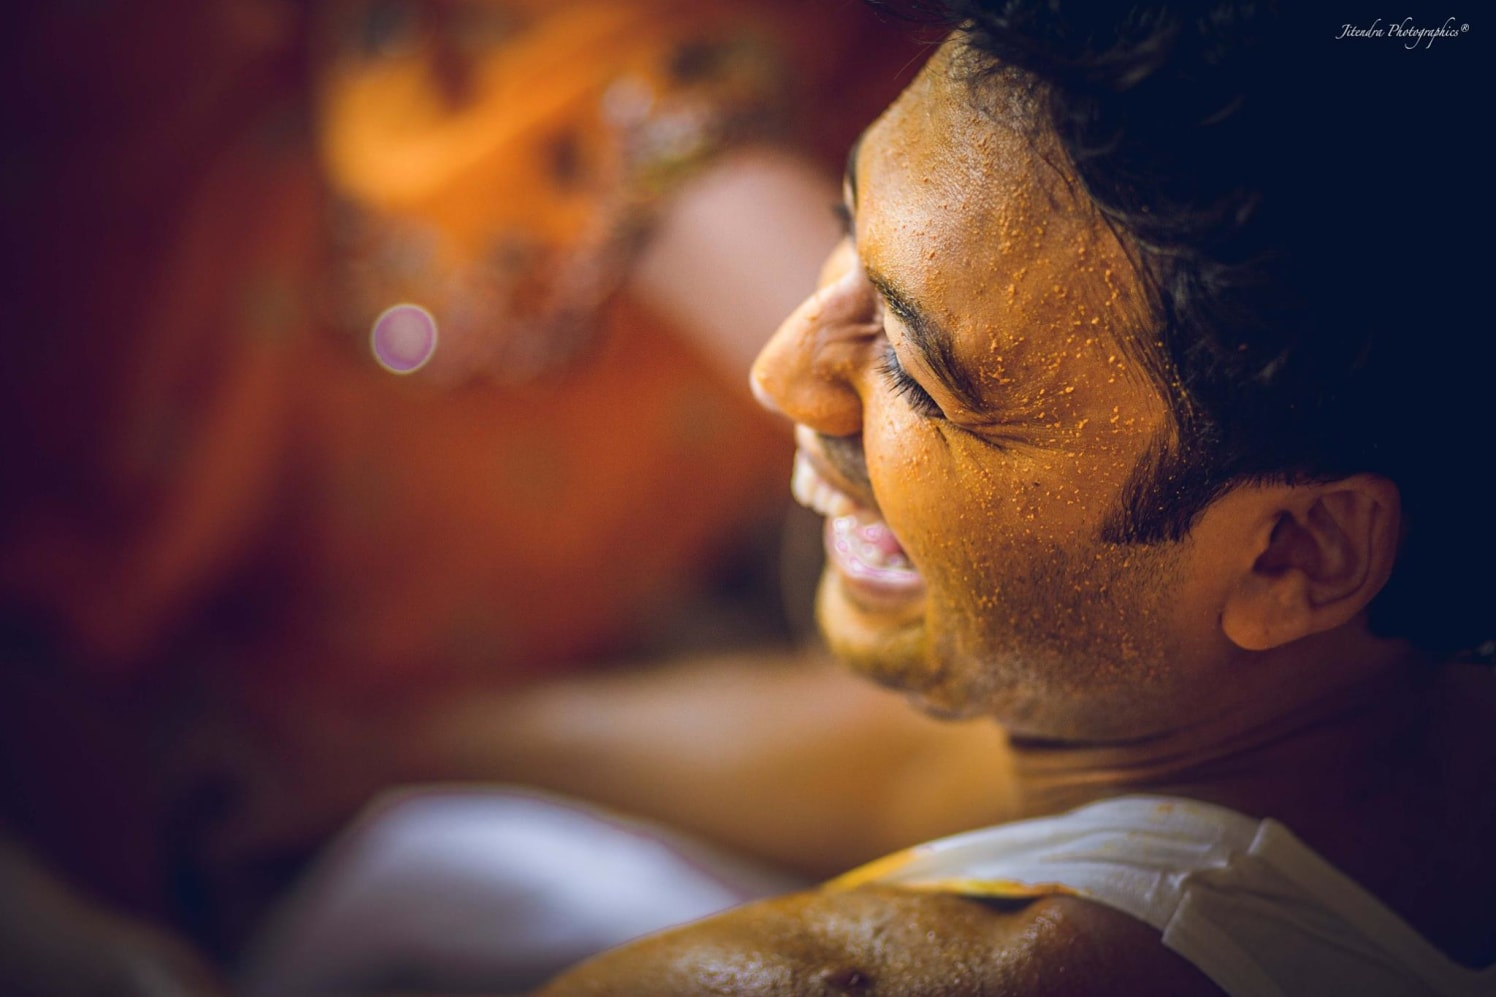 Embedded in haldi by The Dark Room Photography Wedding-photography | Weddings Photos & Ideas